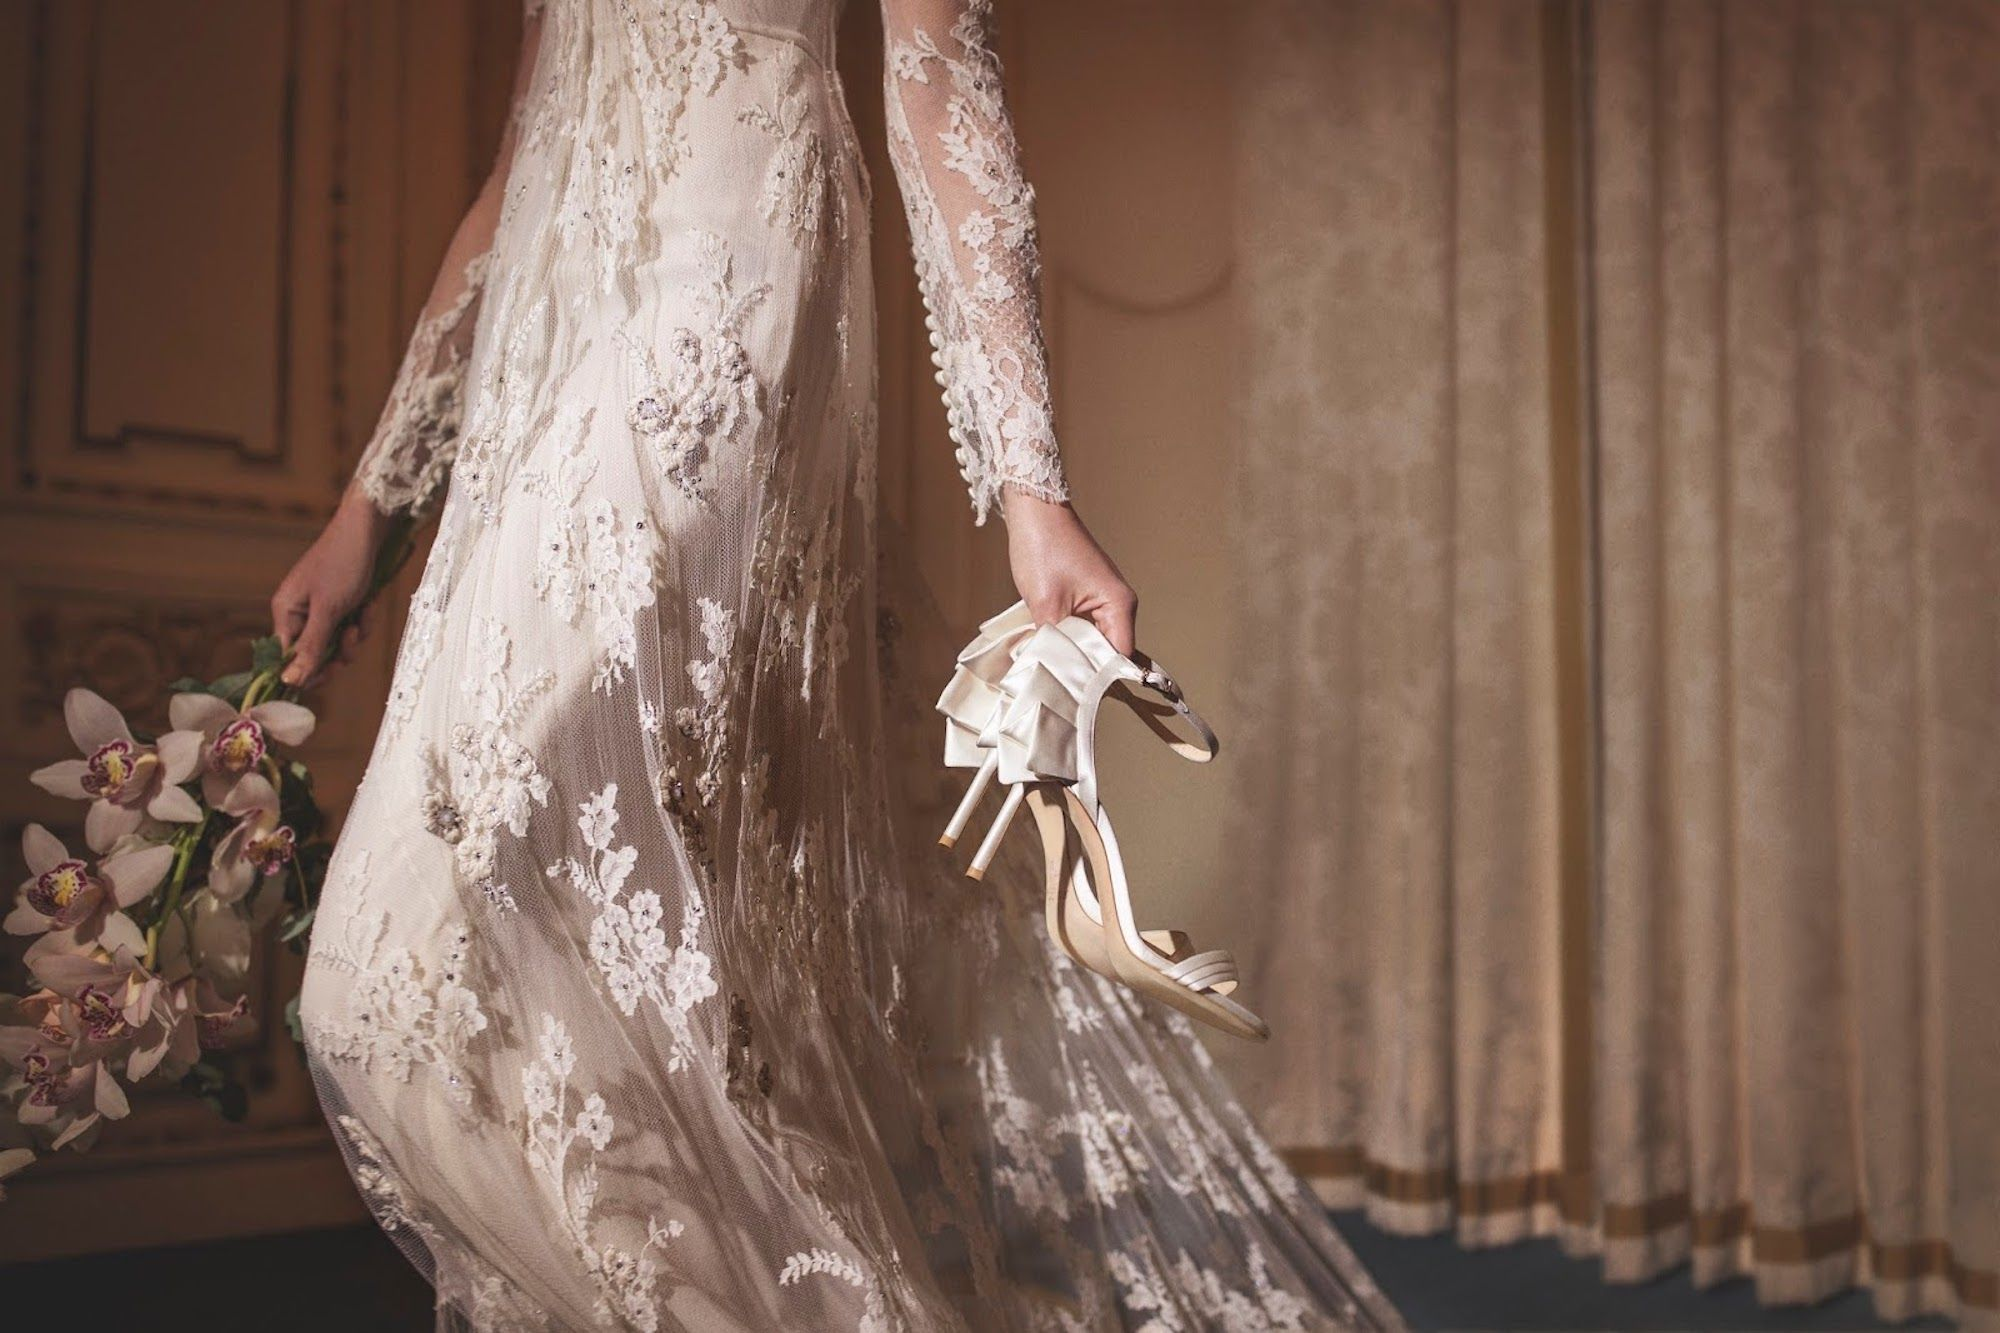 15 Luxurious Wedding Accessories To Complete Your Big Day Look